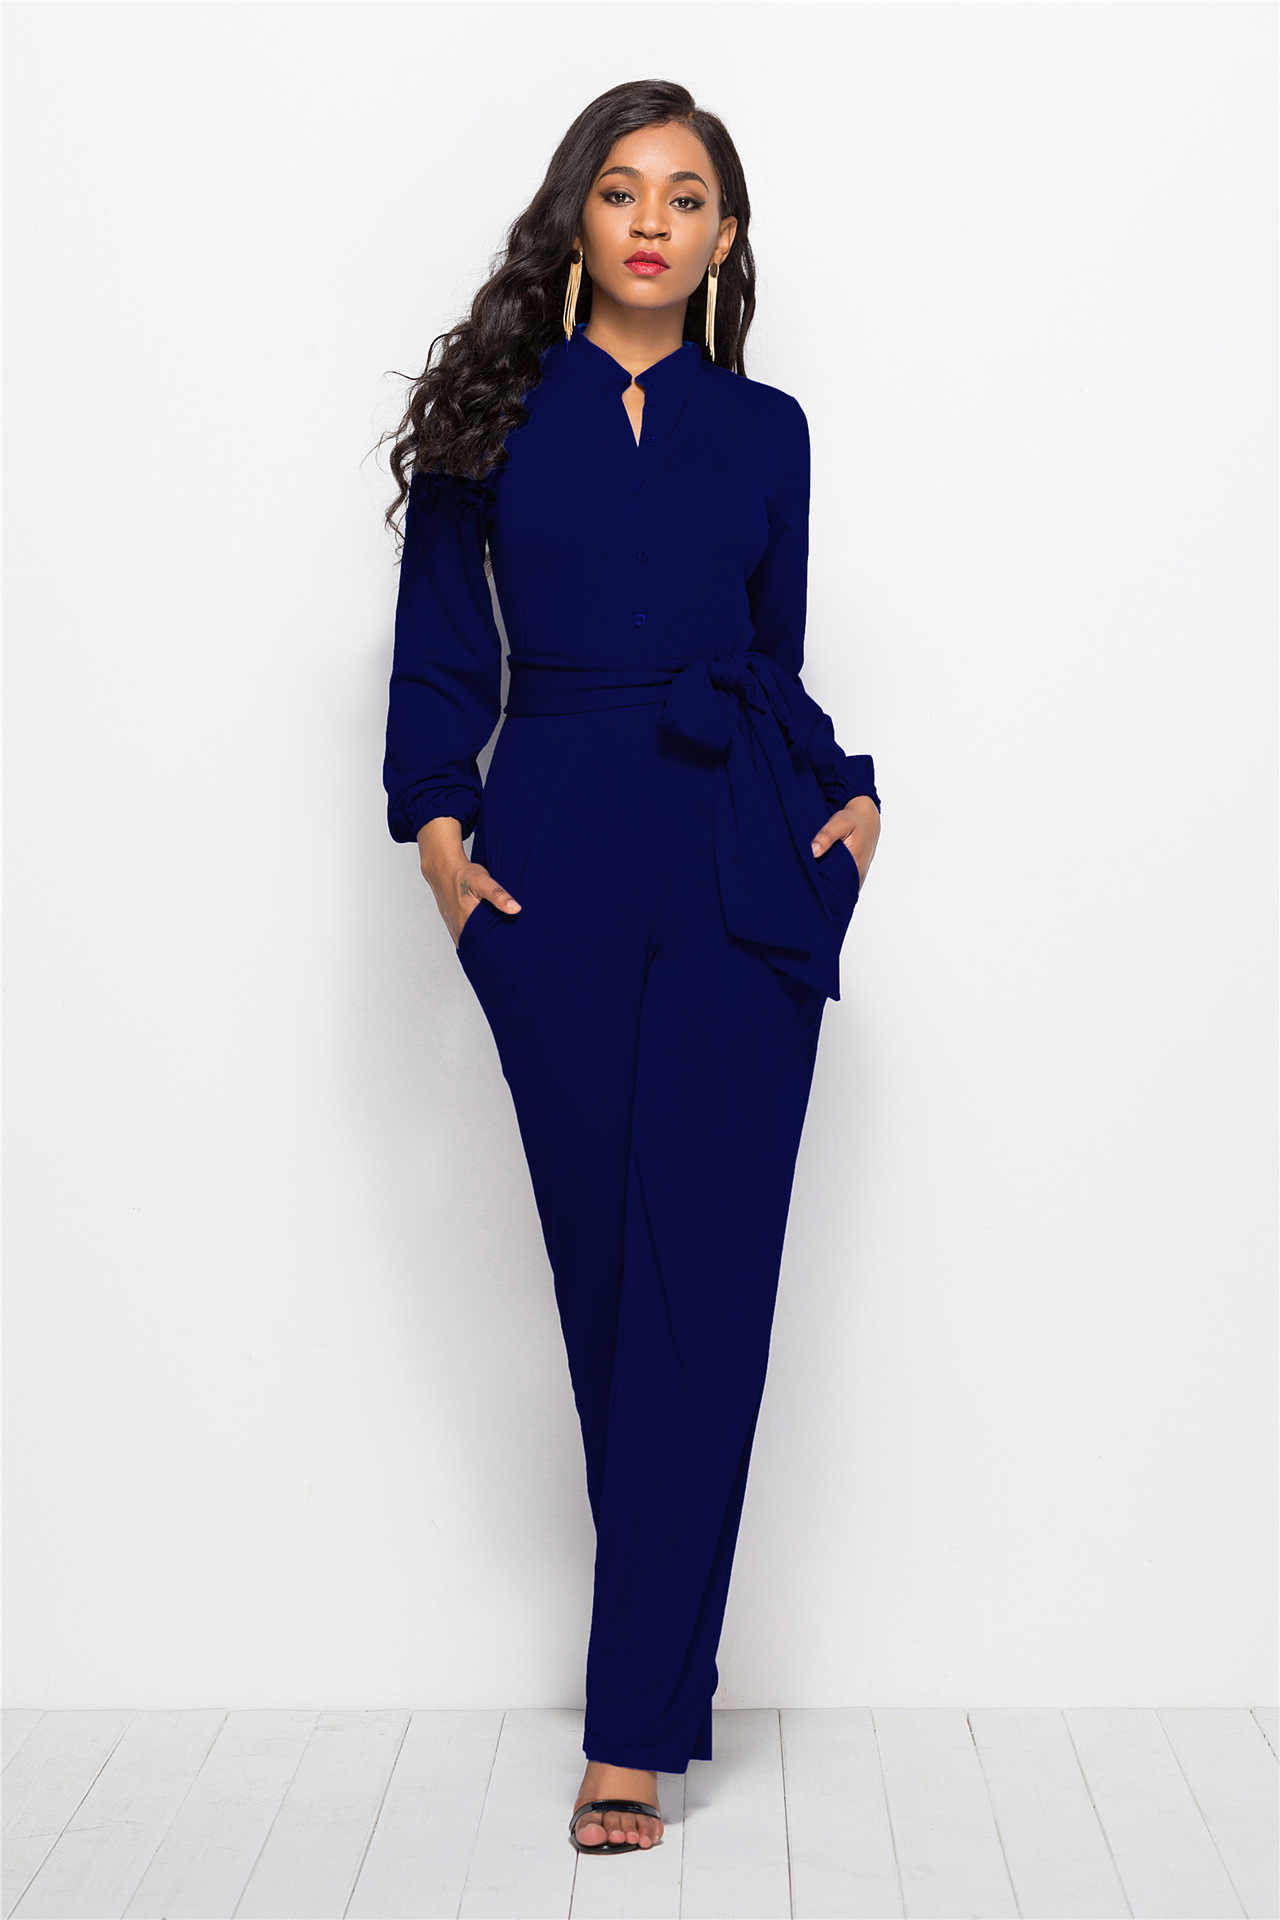 5a67778da3 ... With Sashes Ladies Summer Long Sleeve Jumpsuits for Women Fashion  Formal Jumpsuit Elegant Sexy Wide Leg ...